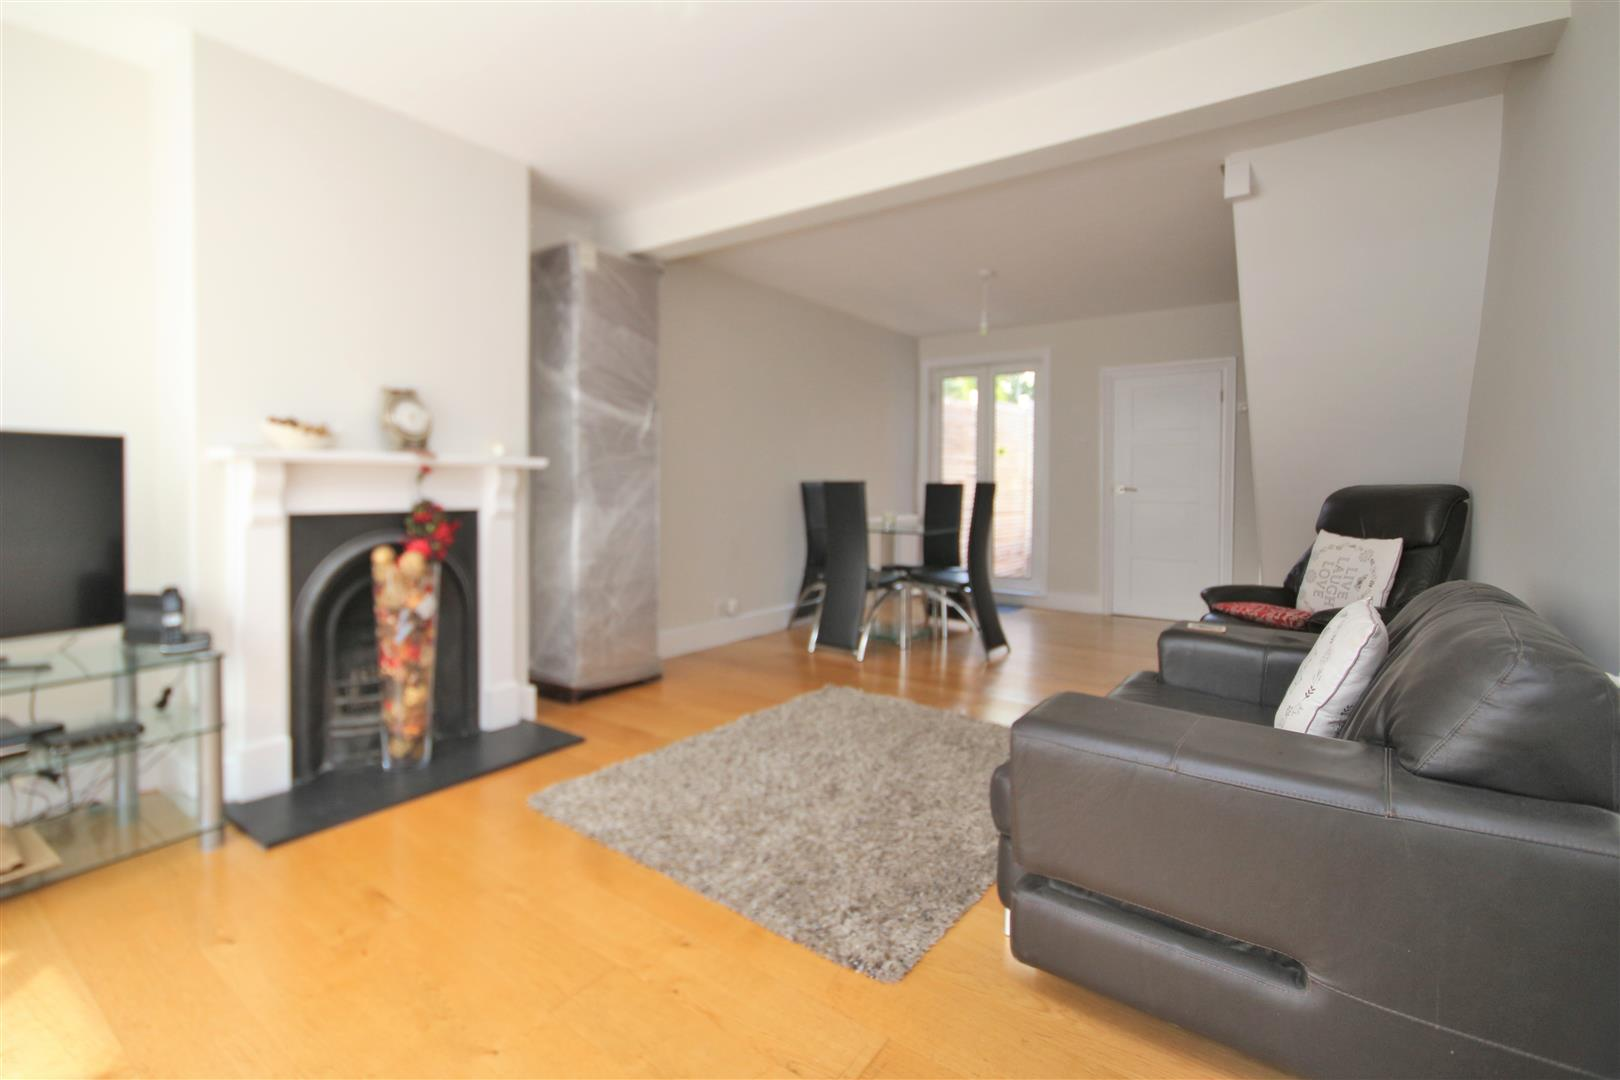 2 bed to rent - (Property Image 1)